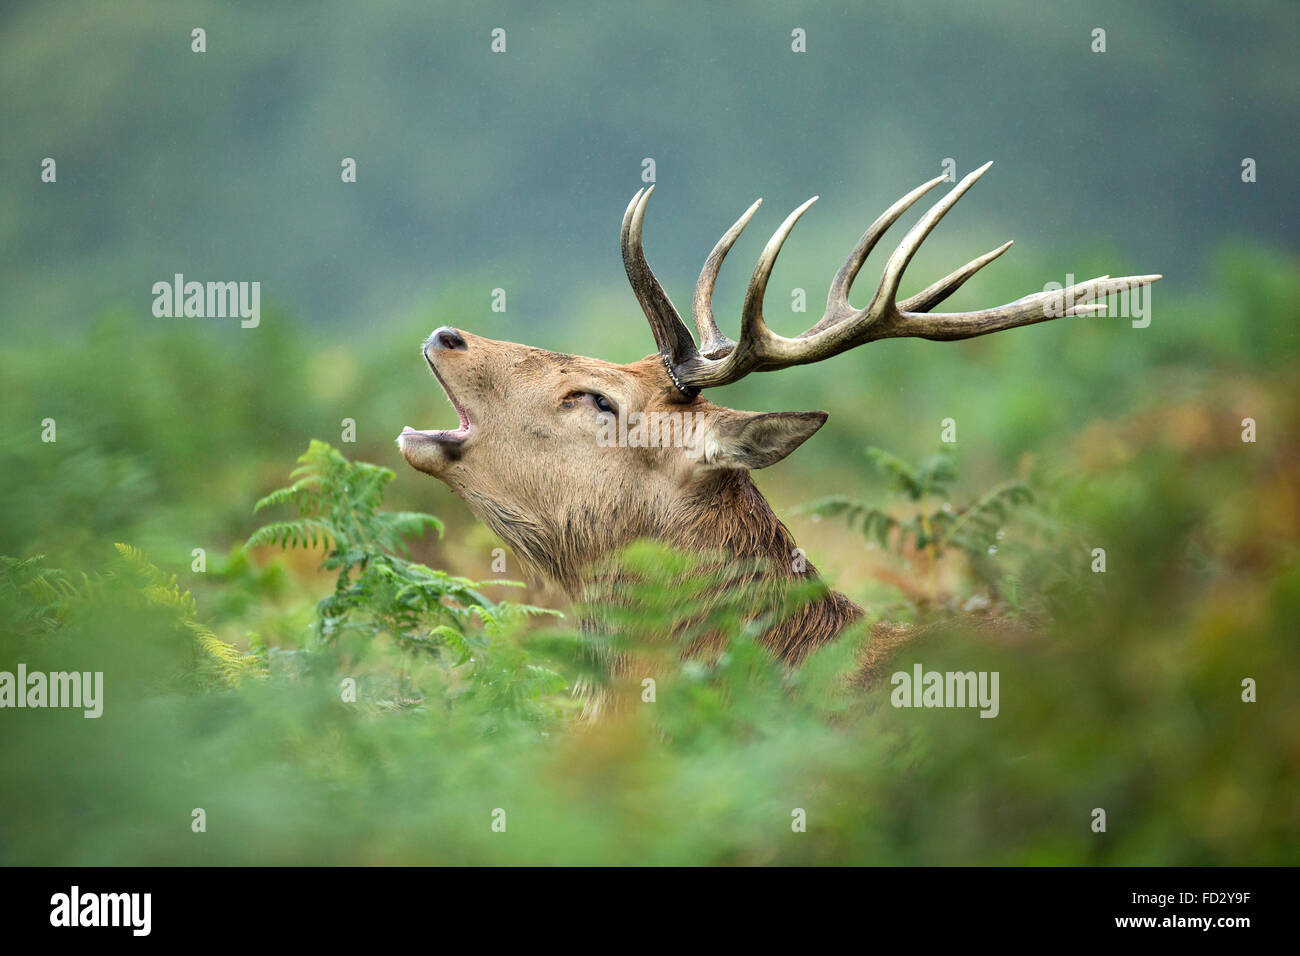 Red deer (Cervus elaphus) stag roaring in bracken during the rutting season - Stock Image